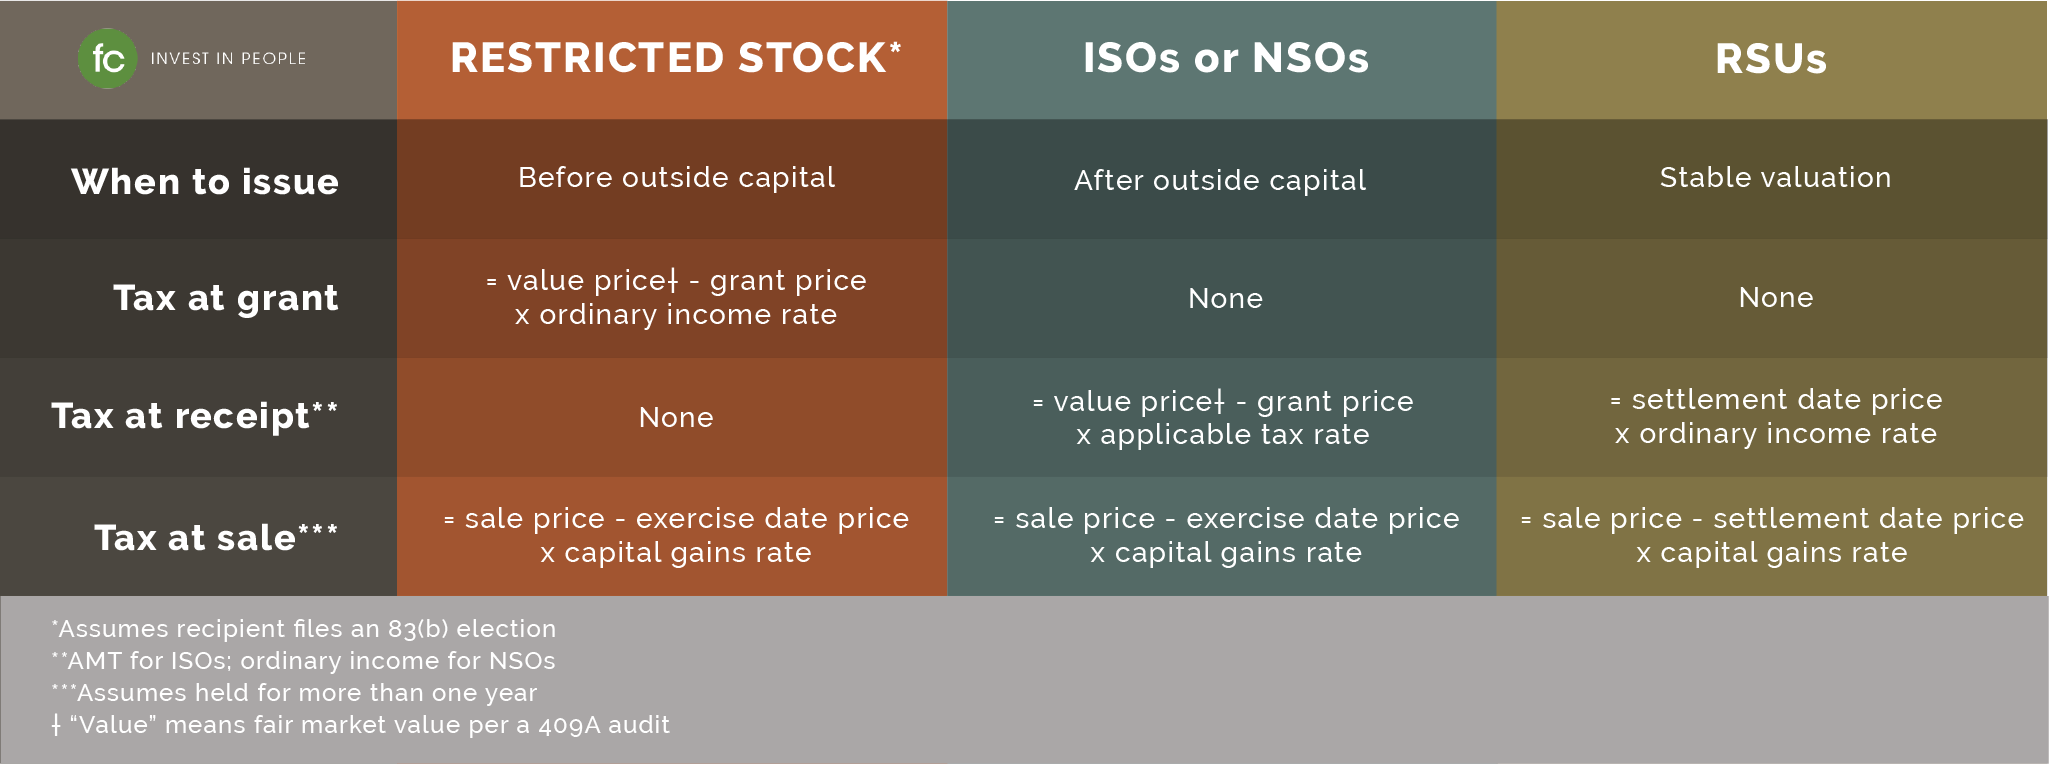 Smarter Equity compensation–restricted stock, ISO, NSO, RSUs